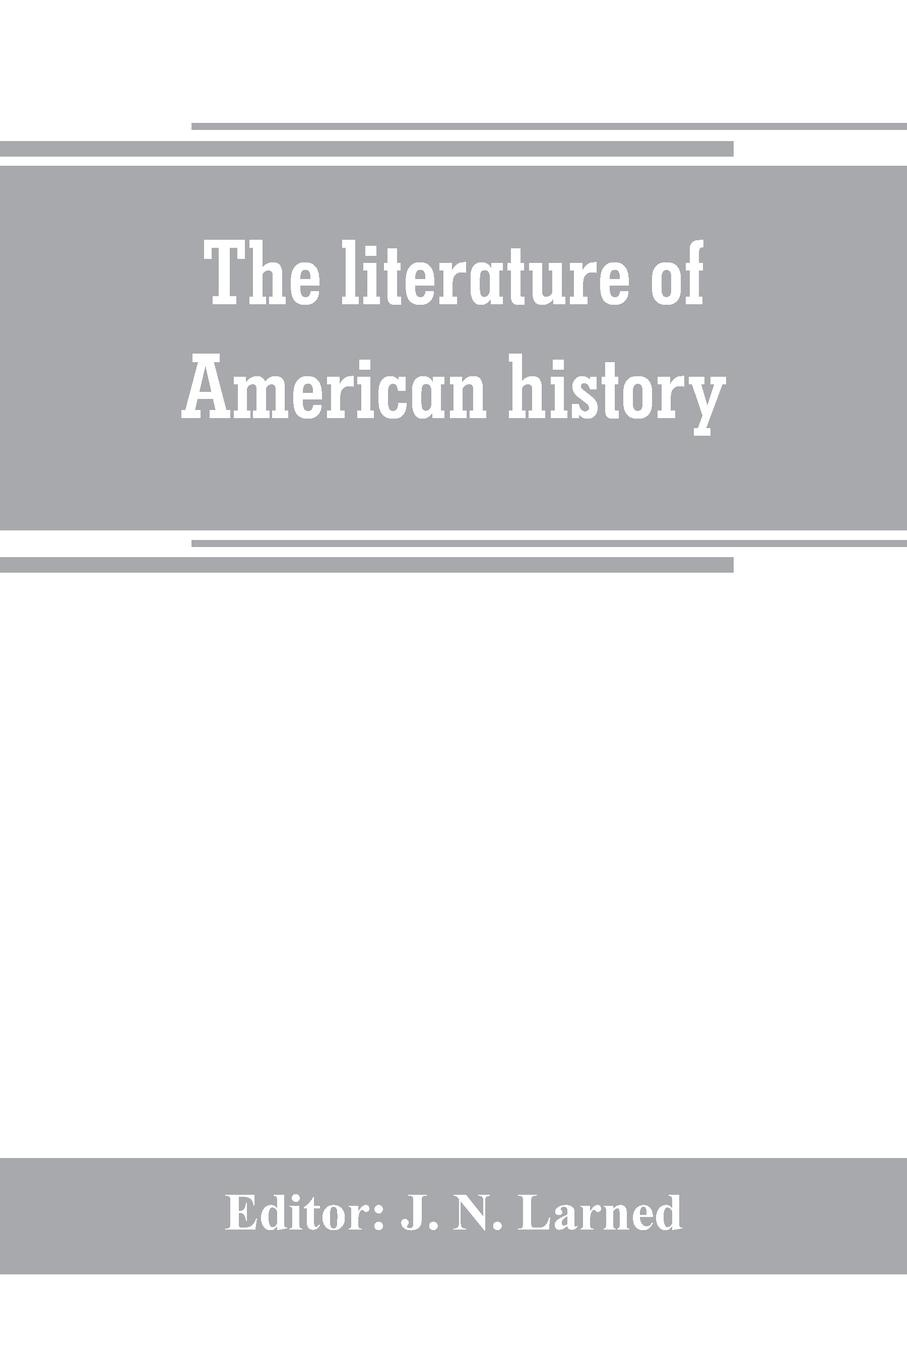 The literature of American history. a bibliographical guide, in which the scope, character, and comparative worth of books in selected lists are set forth in brief notes by critics of authority мария алехина a brief history of british and american literature